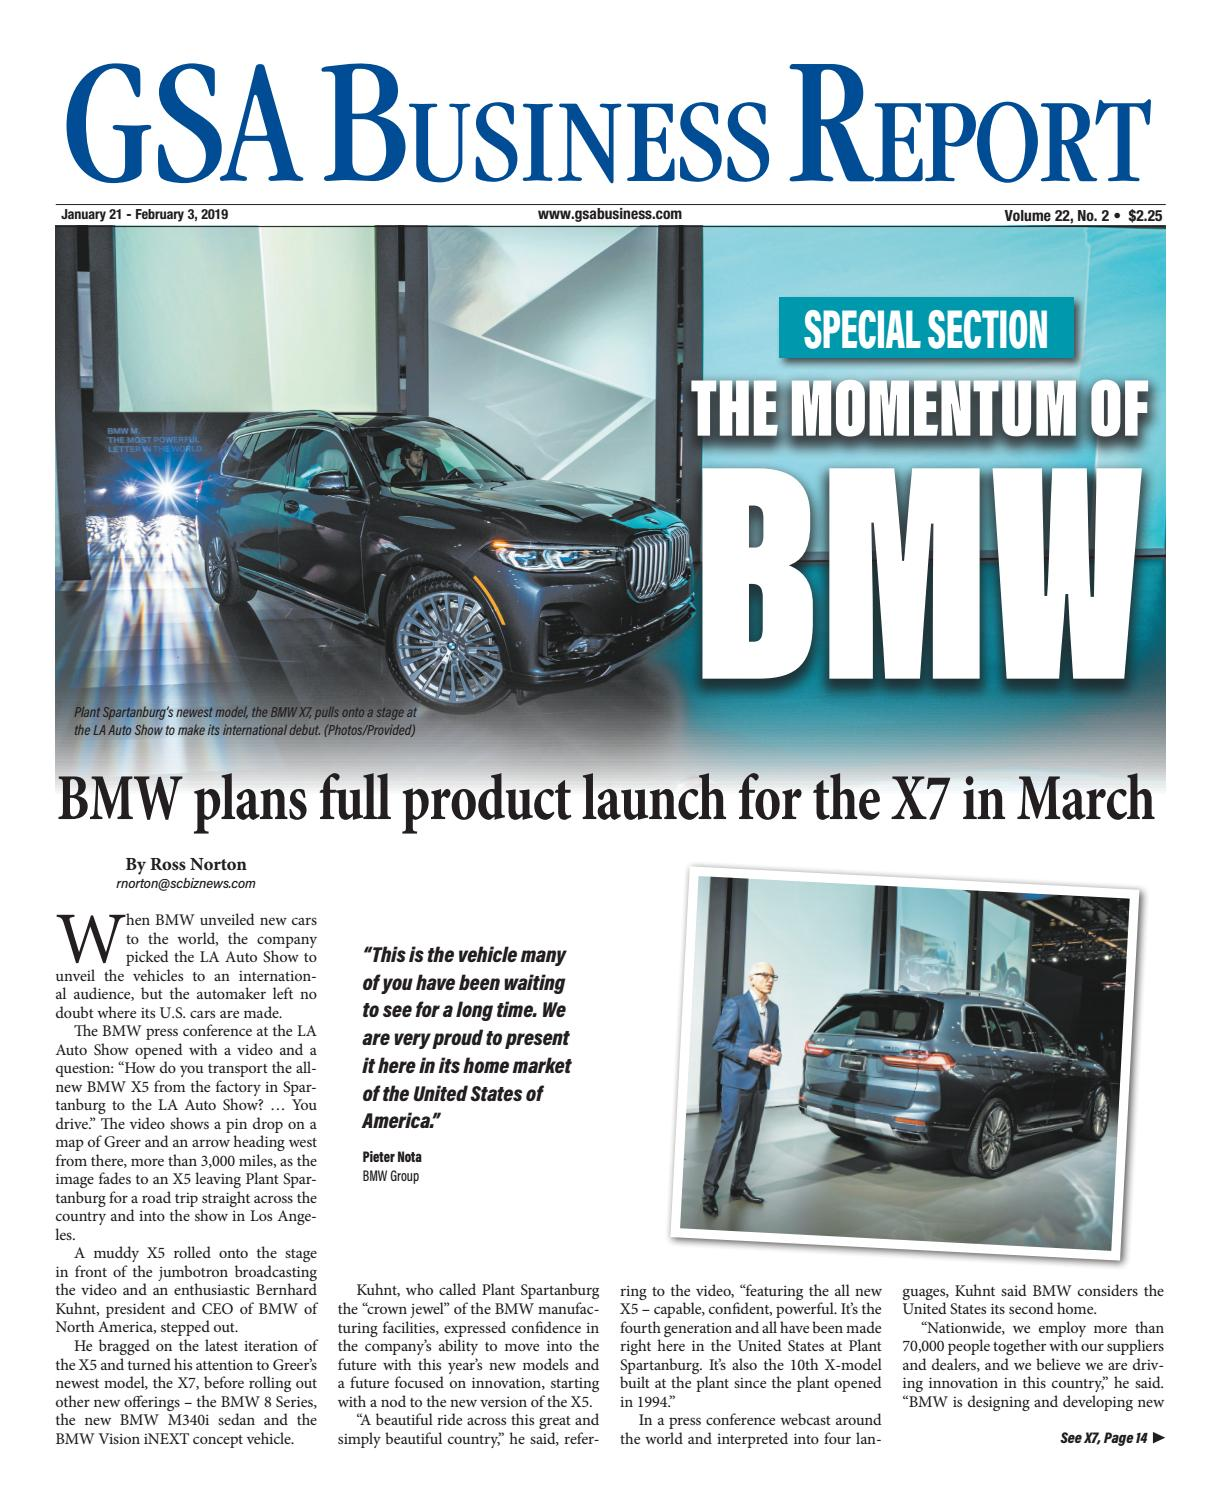 The Momentum of BMW - GSA 1 21 19 Special Section by SC BIZ